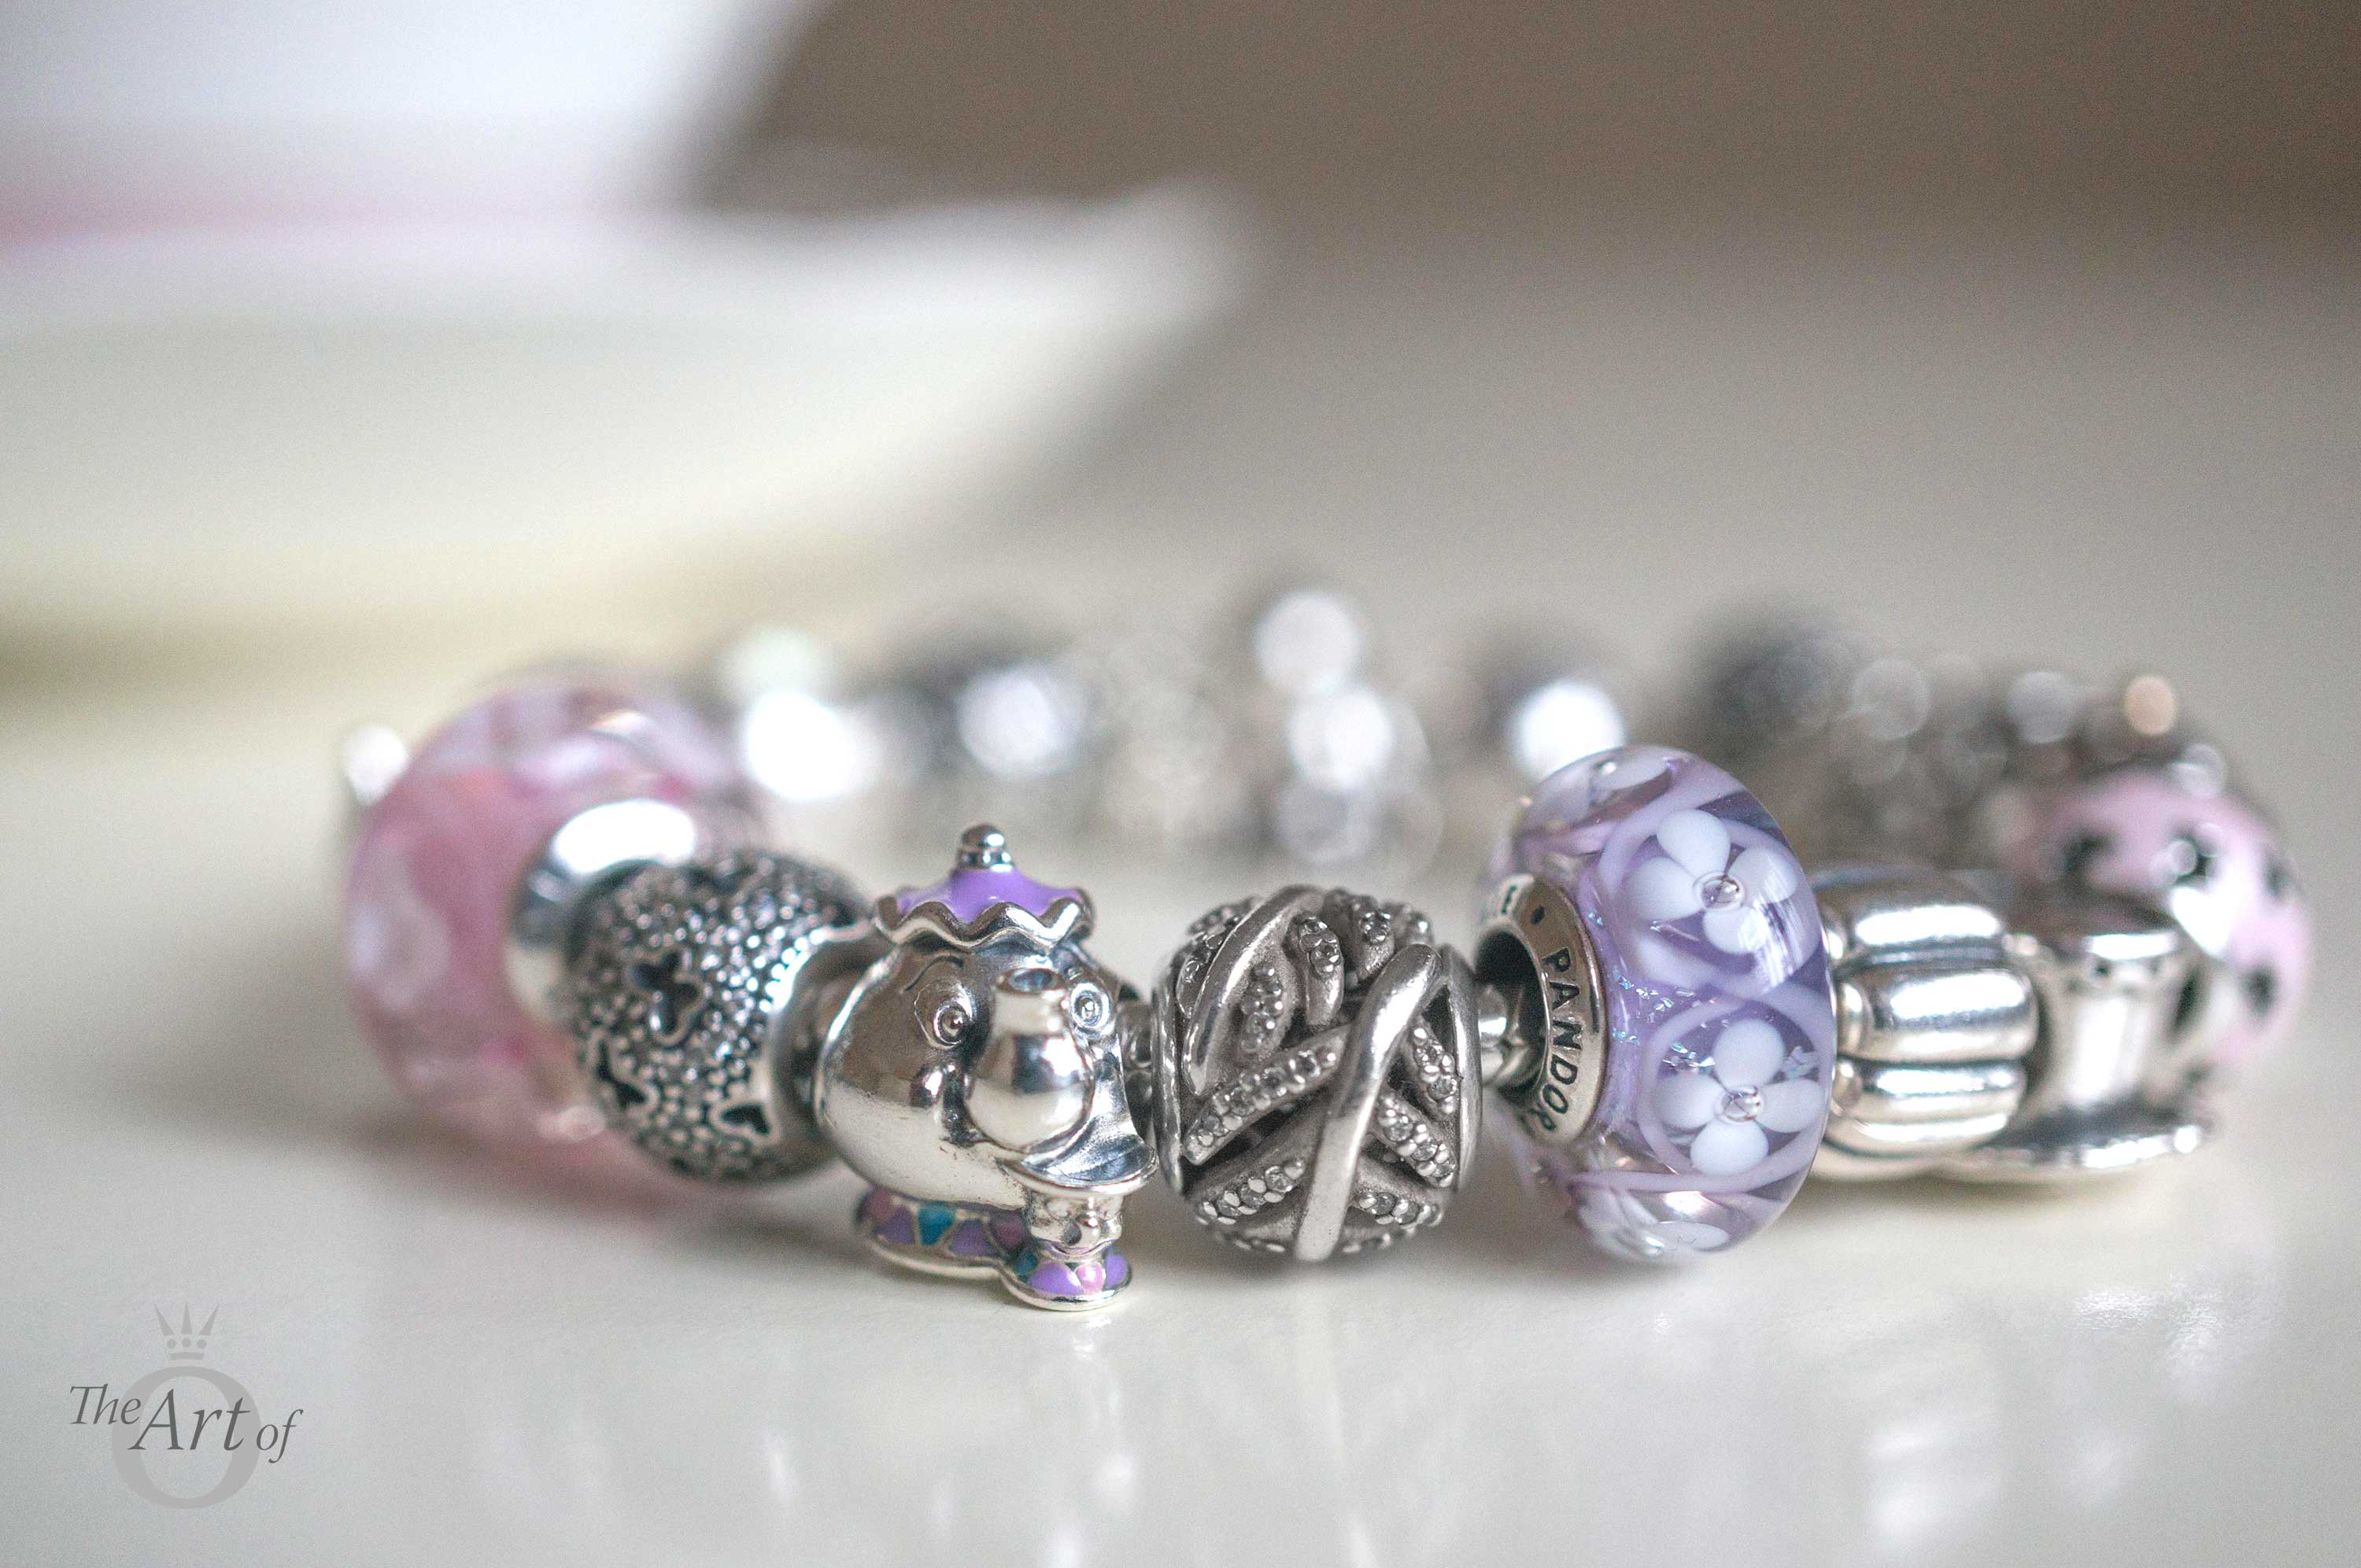 gallery charms bangle reviews charm pandora in item image bracelets bangles chickadvisor